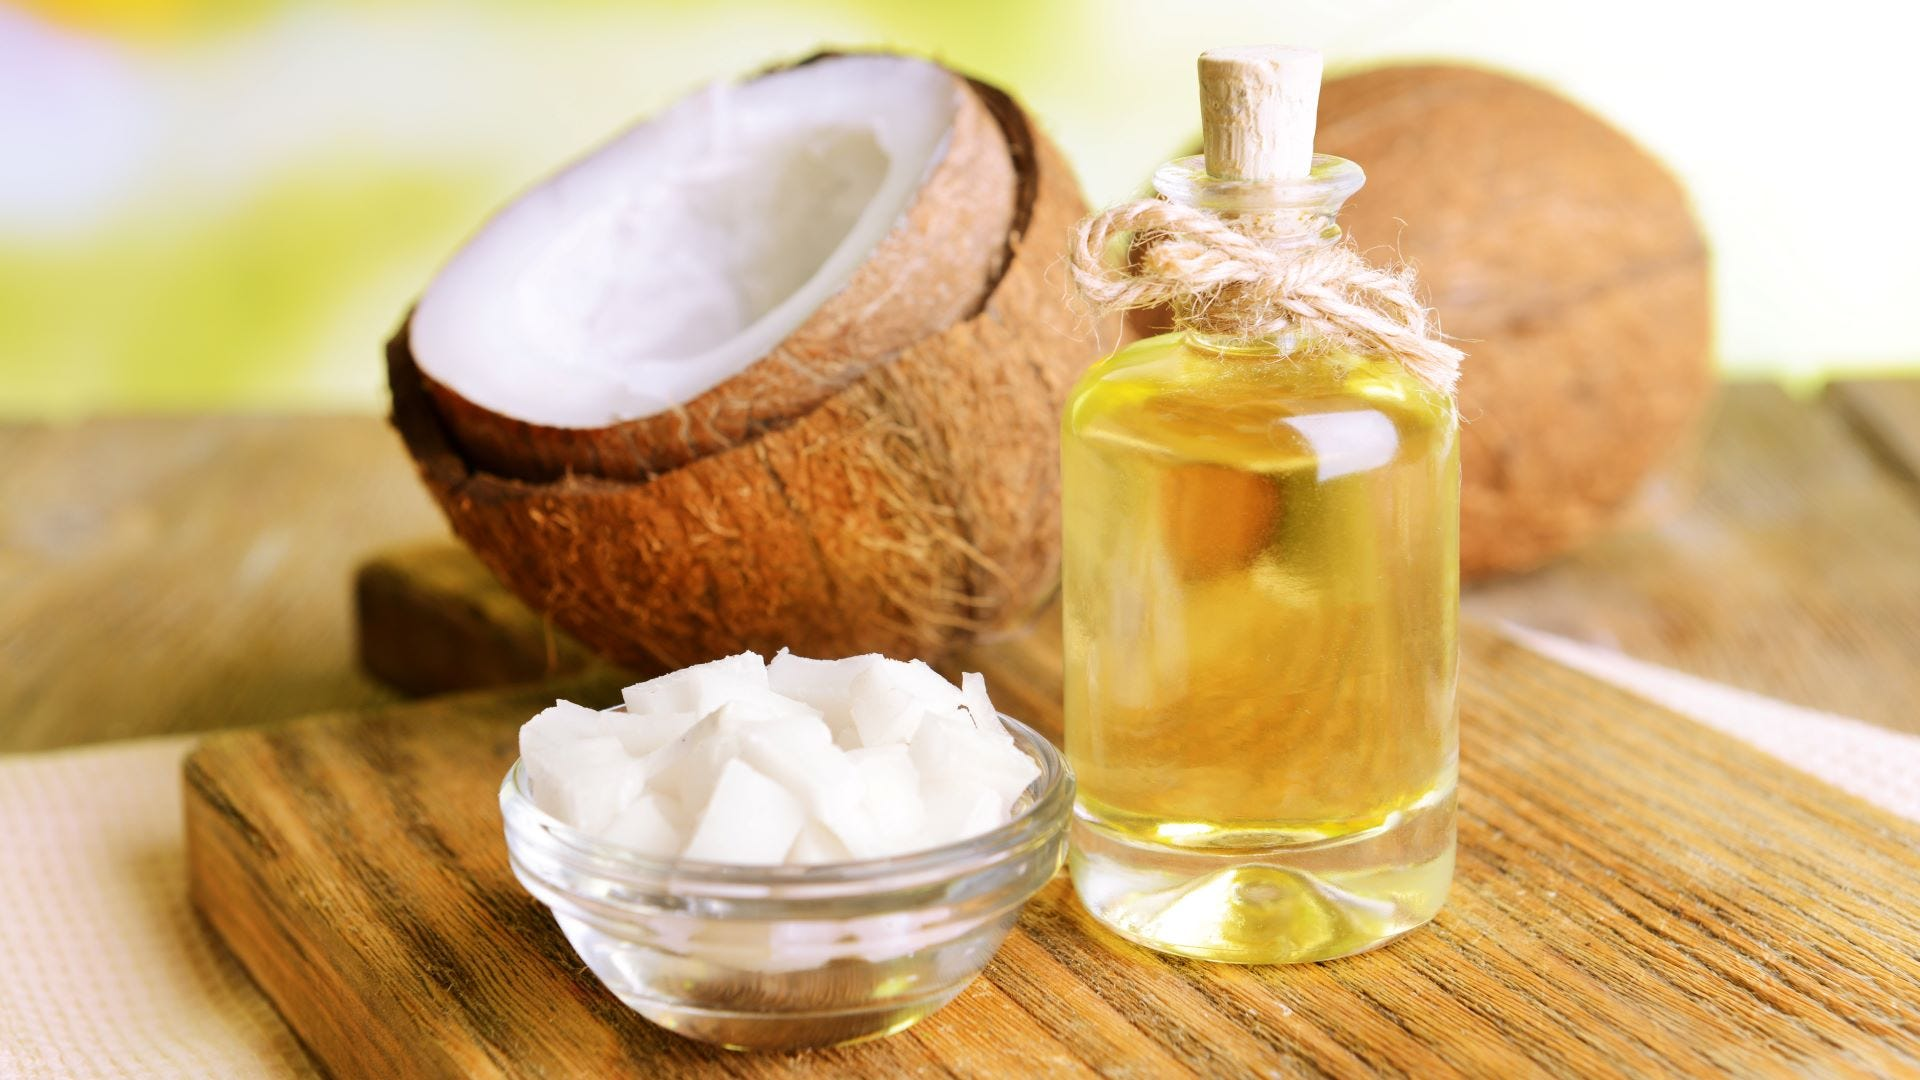 Coconut oil in a bottle next to coconuts.